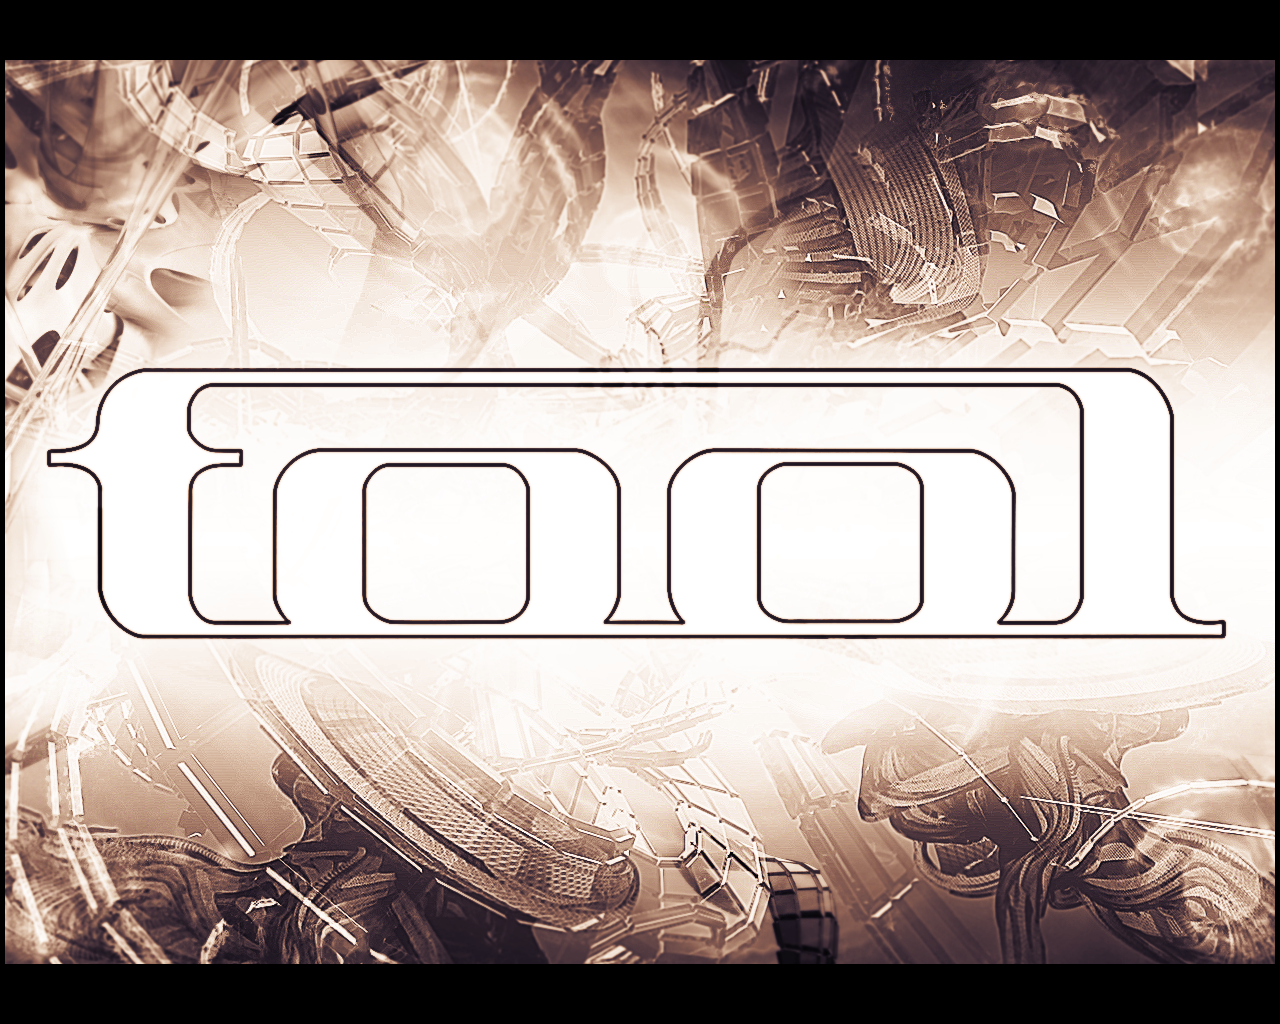 Tool_logo_wallpaper_1280x1024_by_ALFDCLX